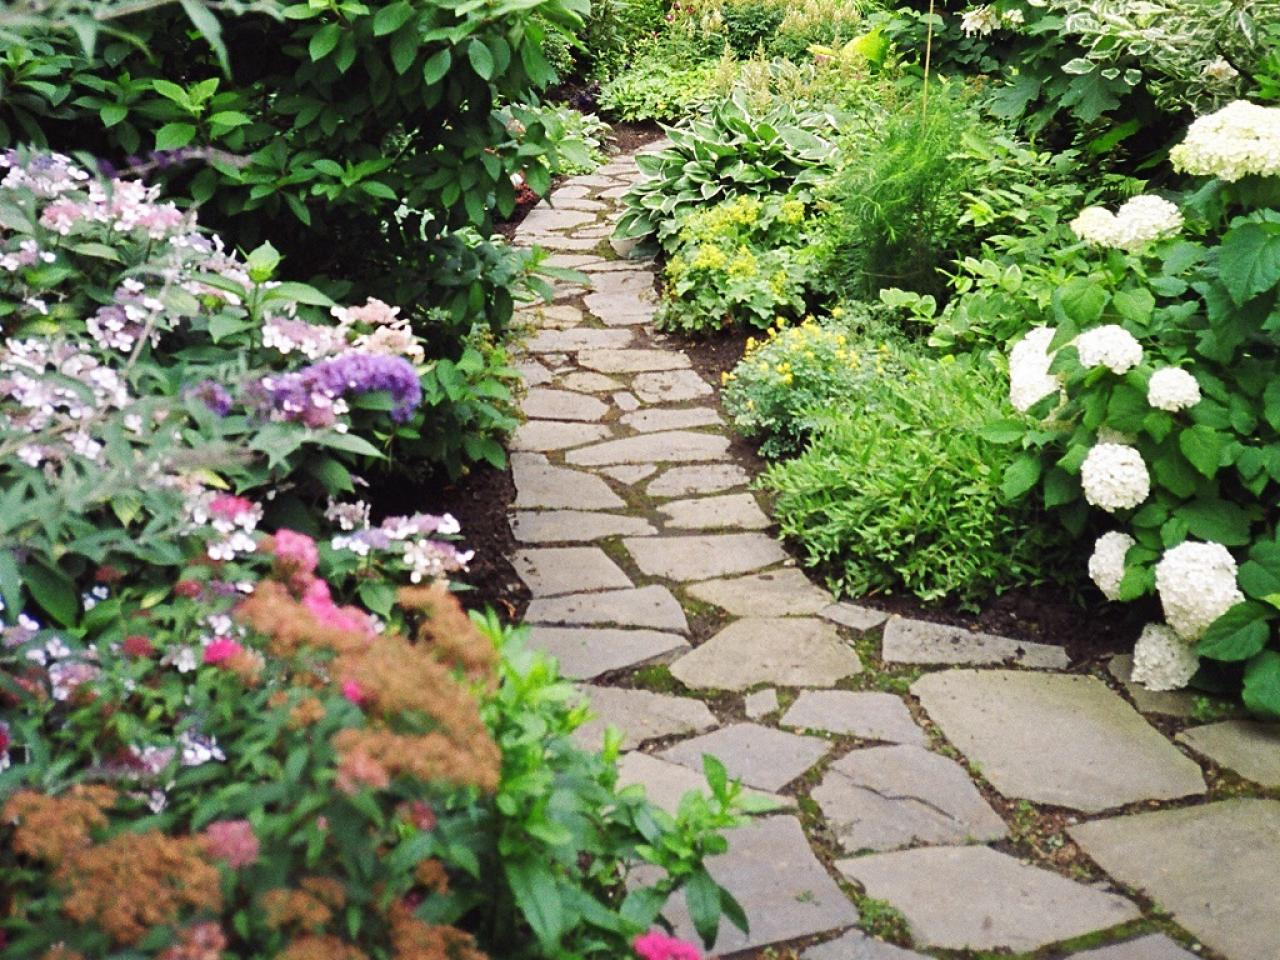 Hardscaping in LBI, 5 Design Ideas for Hardscaping in LBI